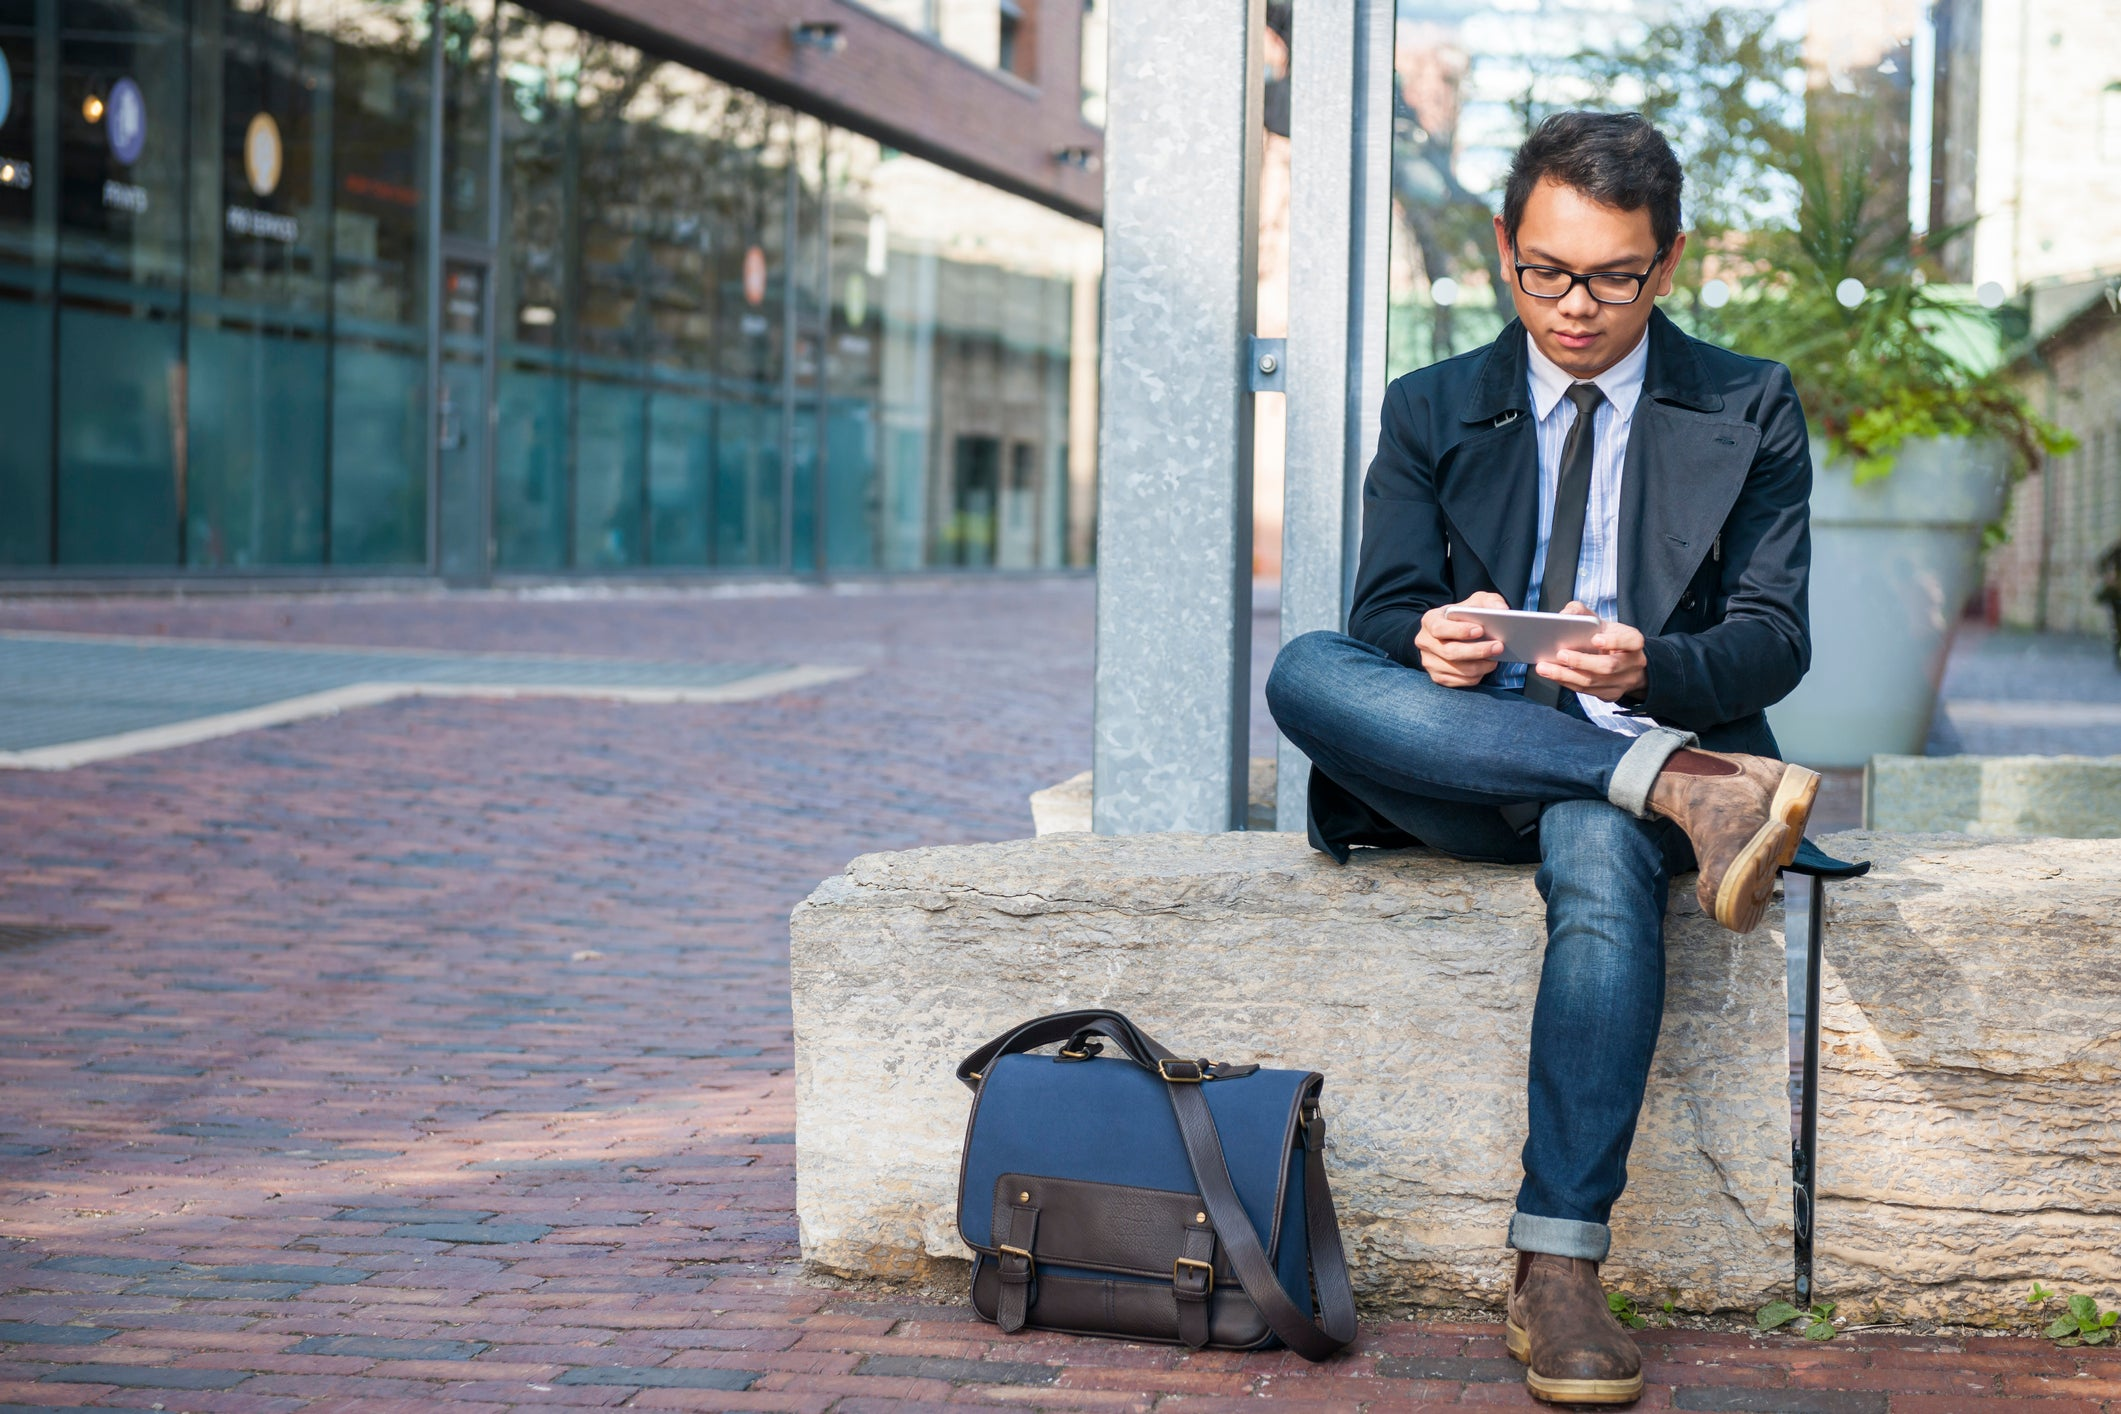 A well-dressed man on sitting on a stone bench and reading something on his phone.